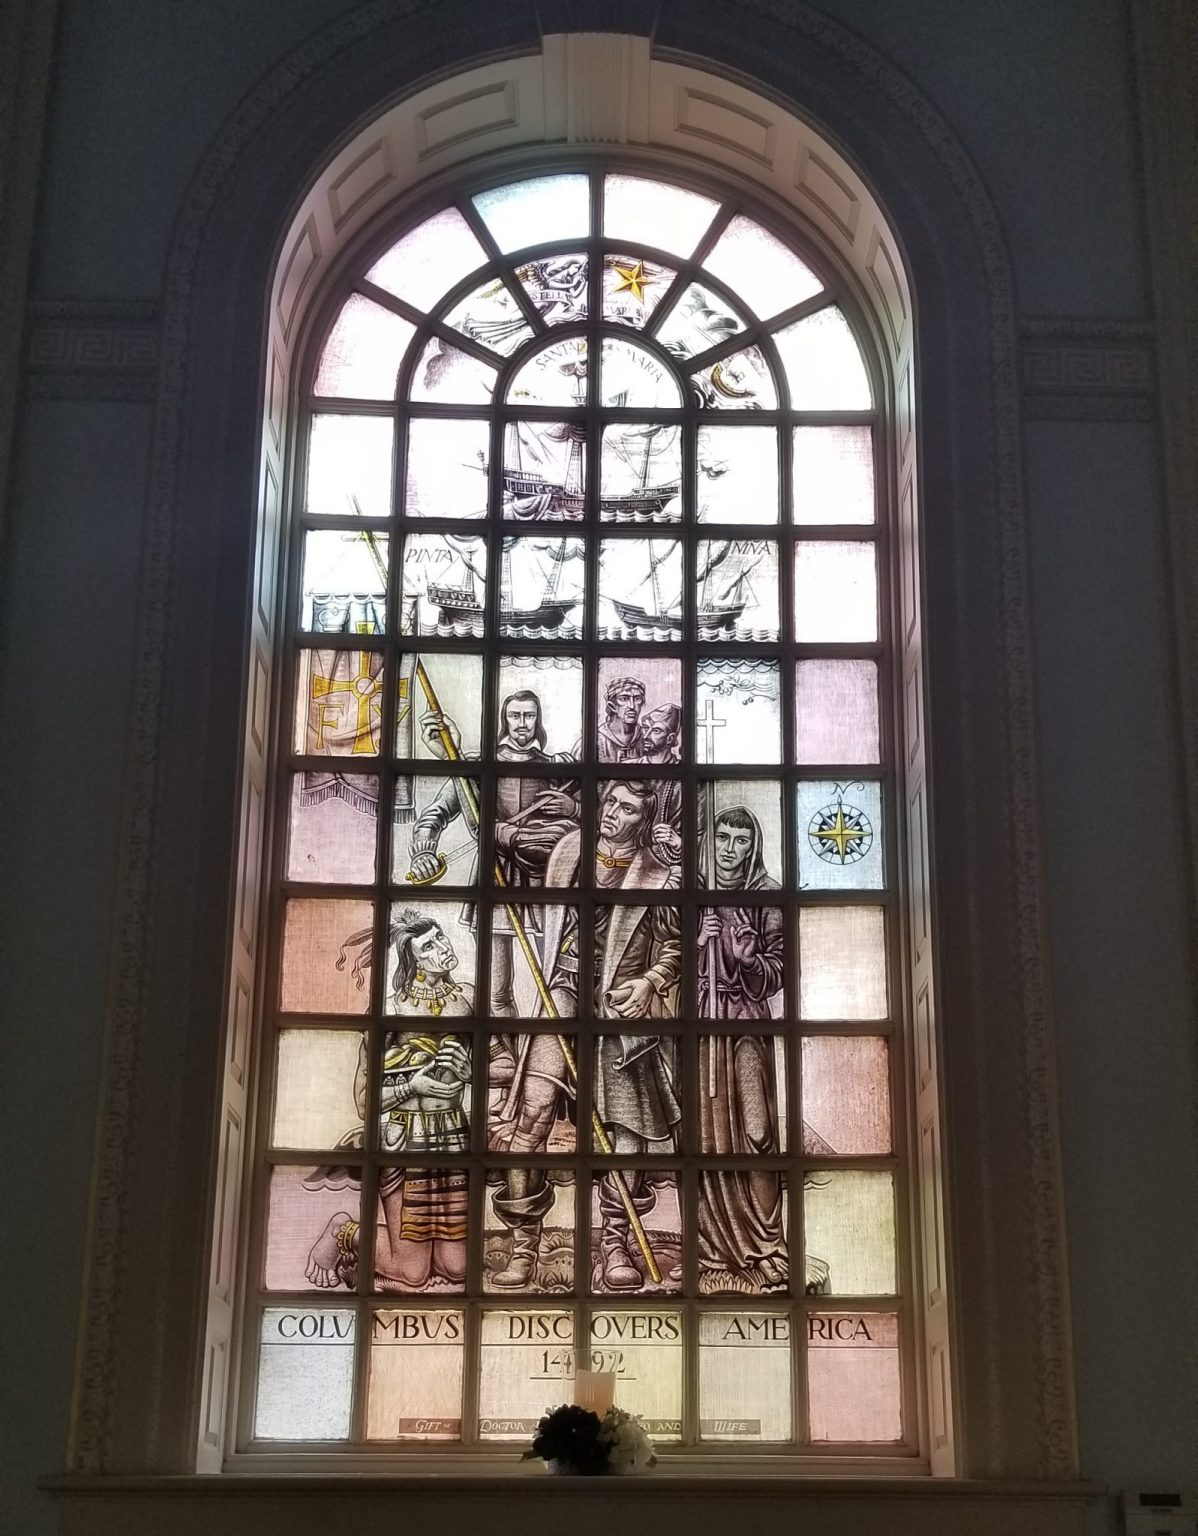 The Columbus Window